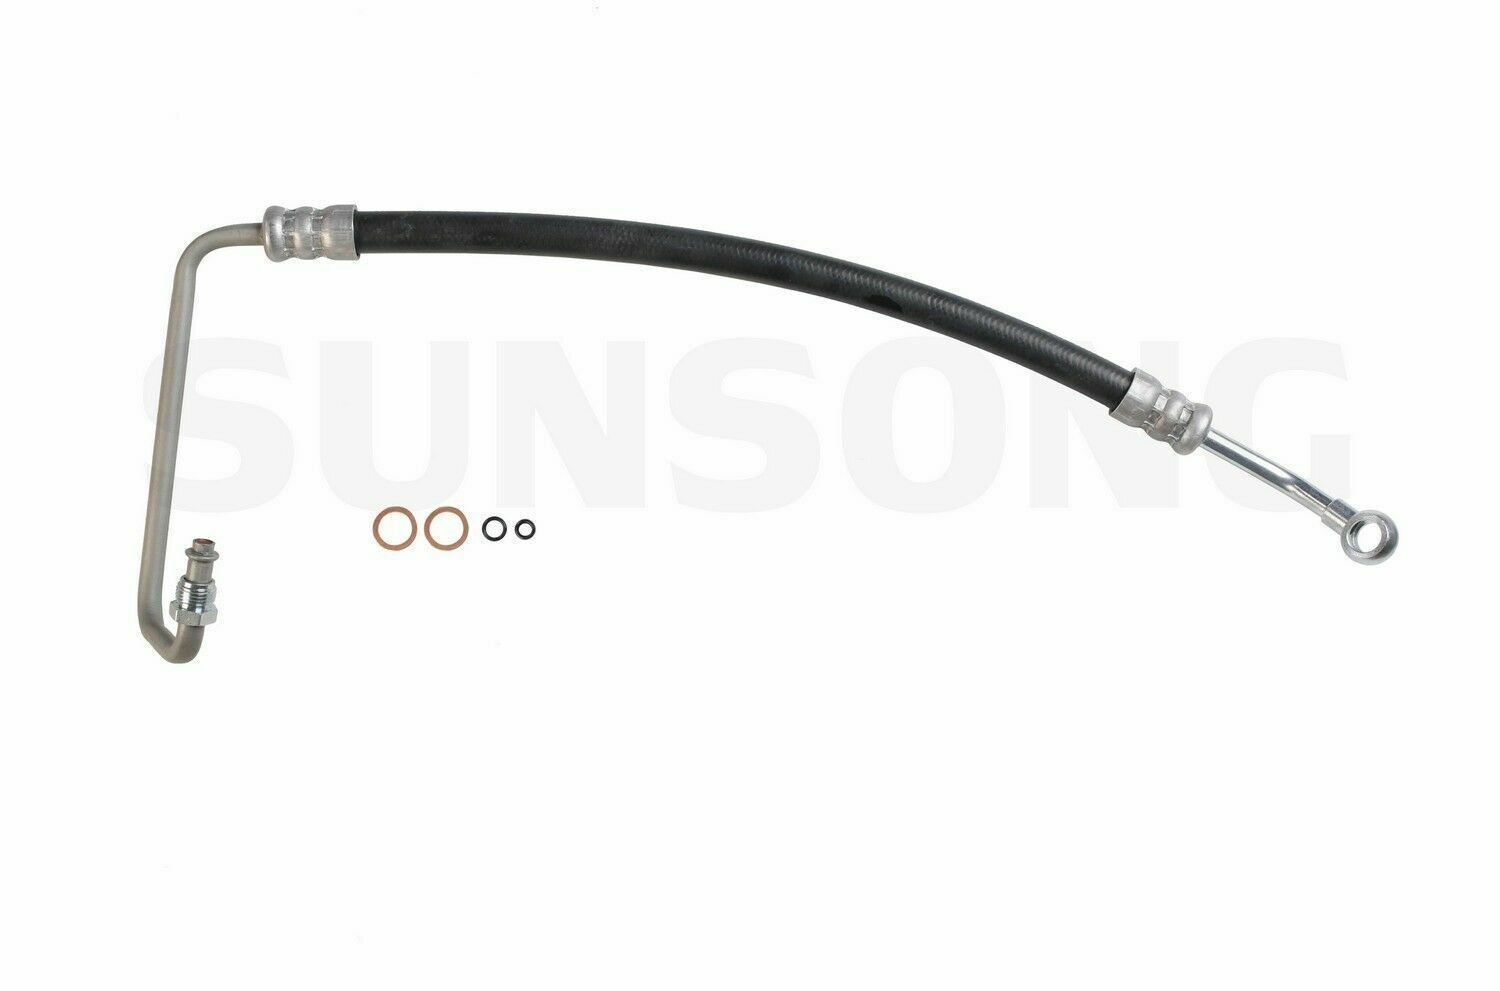 Power Steering Pressure Line Hose Assembly 3402054 fits 91-93 Volvo 240